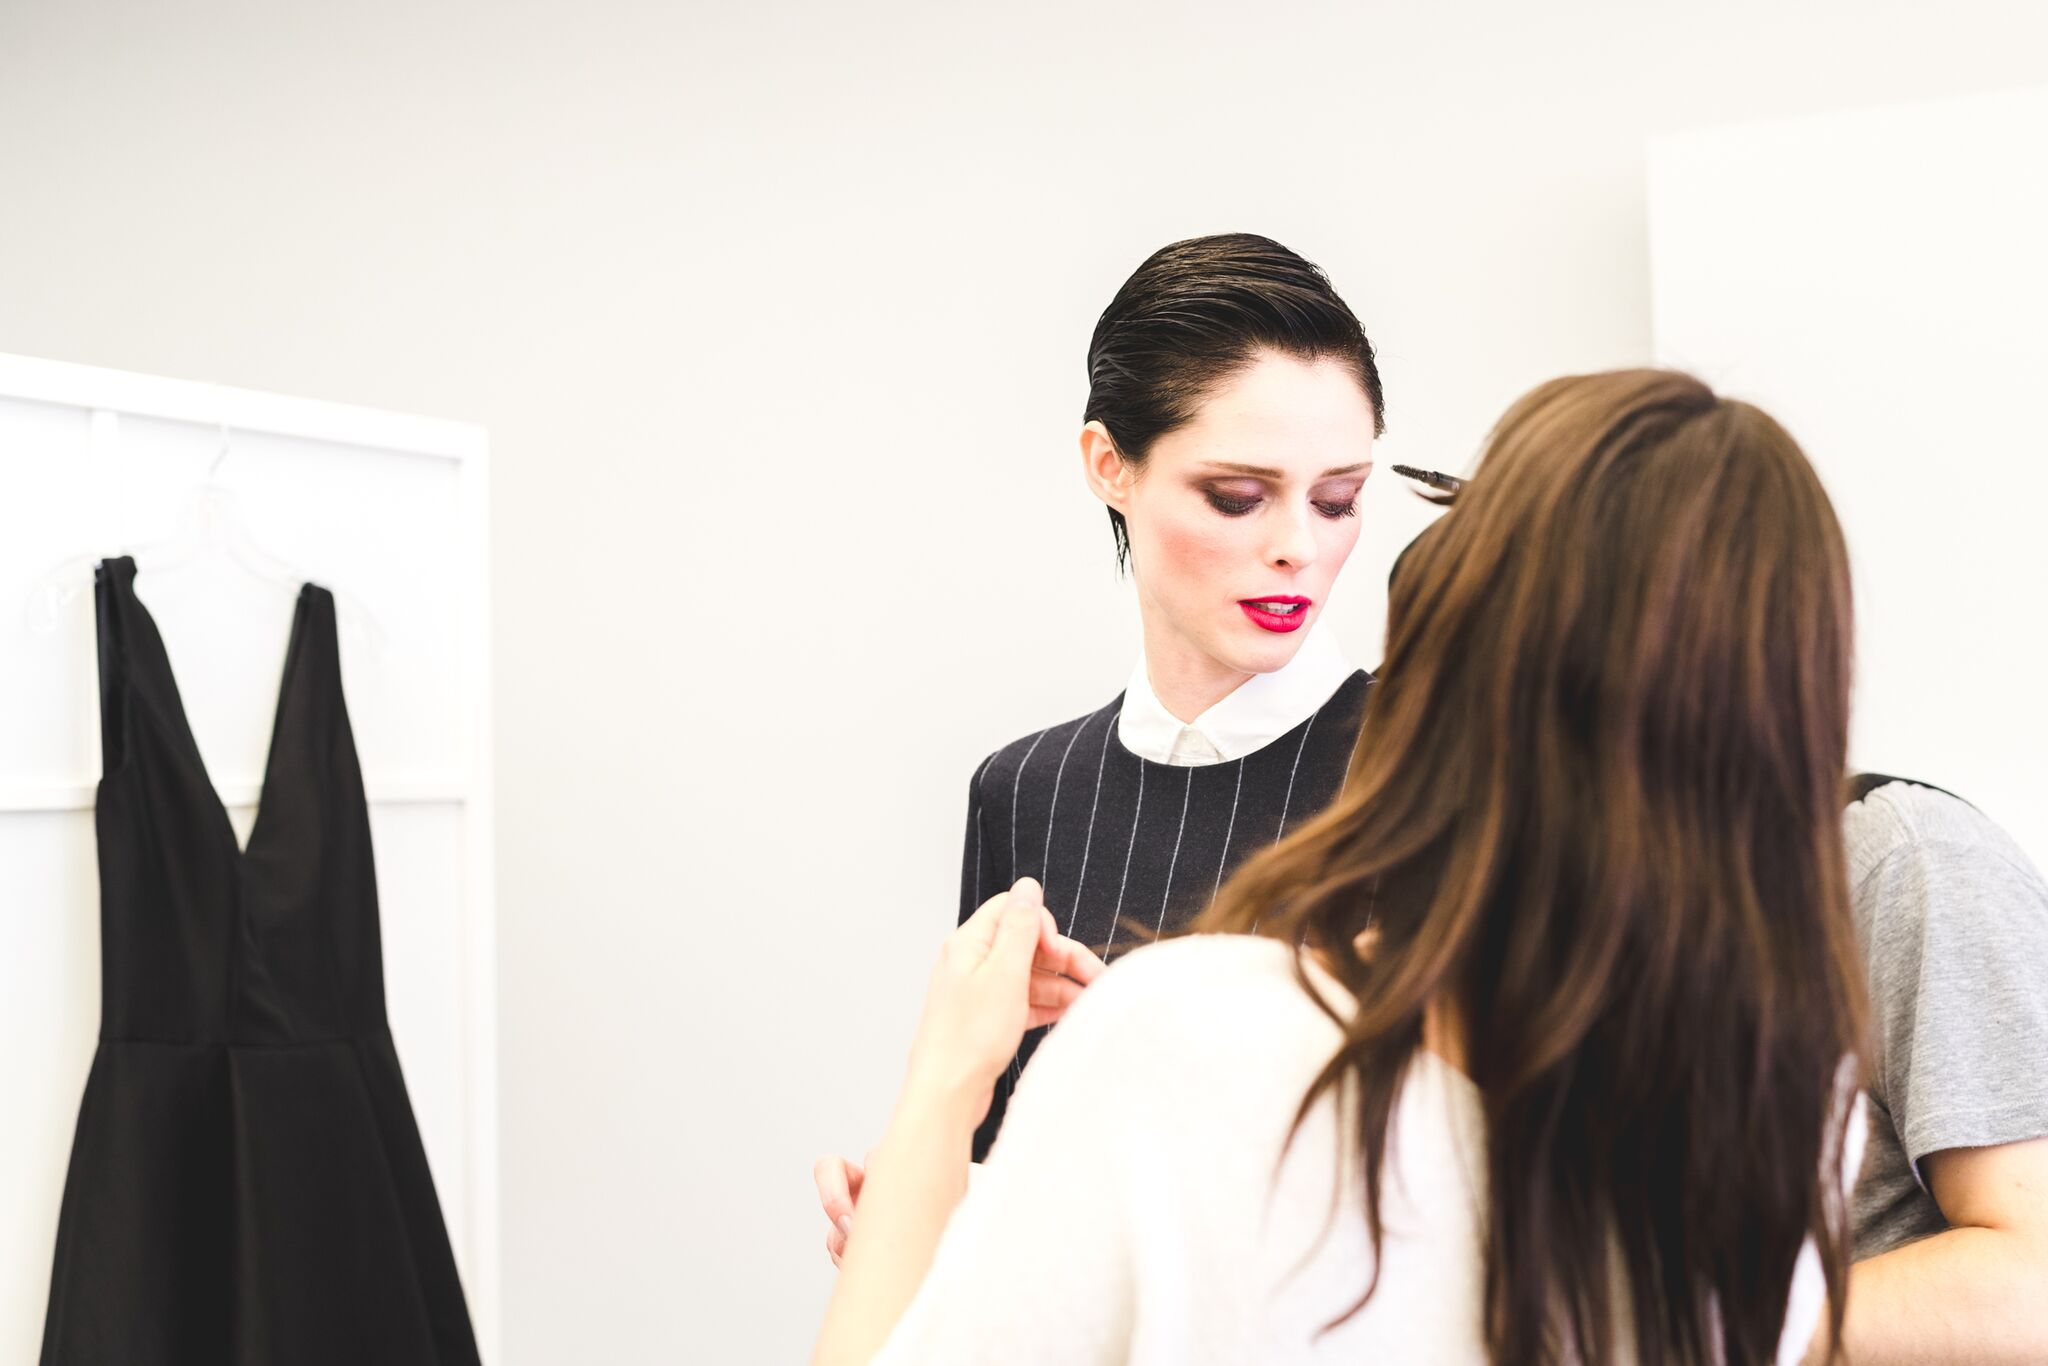 coco rocha behind the scene fro rockland center by fashion blogger mademoiselle jules mlle